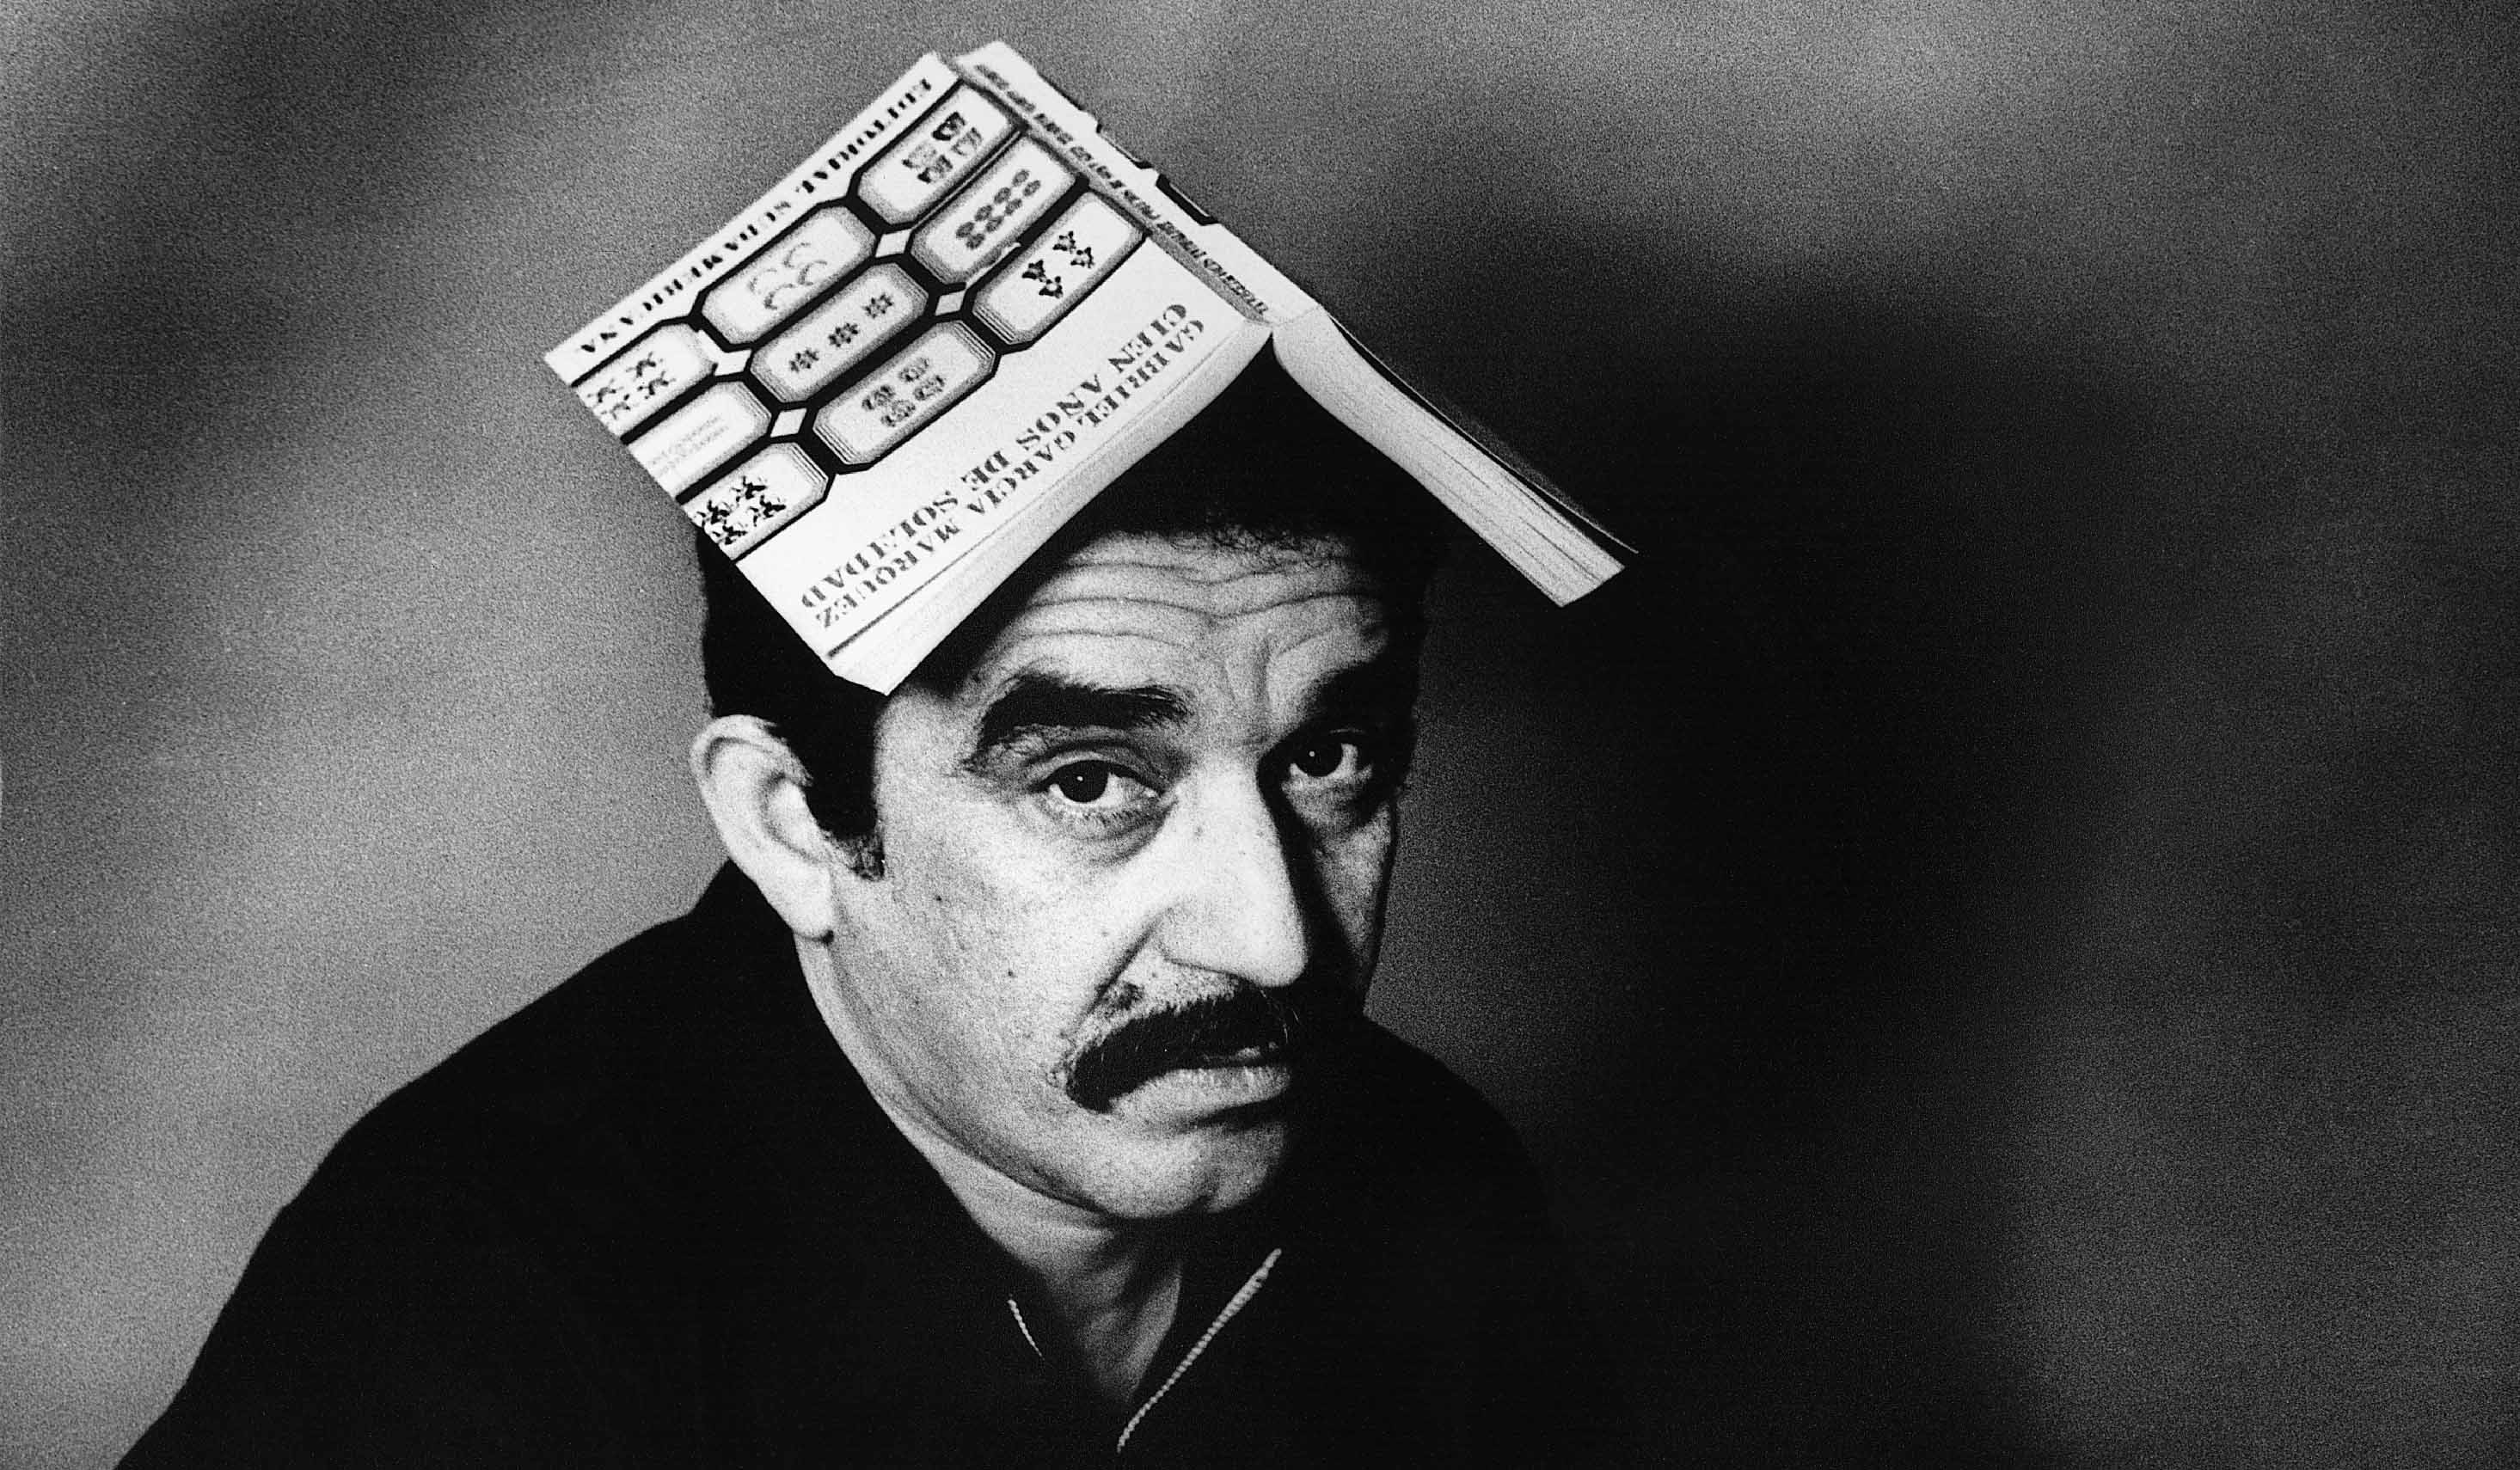 1975, Colombia --- Nobel-prize winning author Gabriel Garcia Marquez sits with a copy on his book One Hundred Years of Solitude) open on his head. --- Image by © Colita/CORBIS